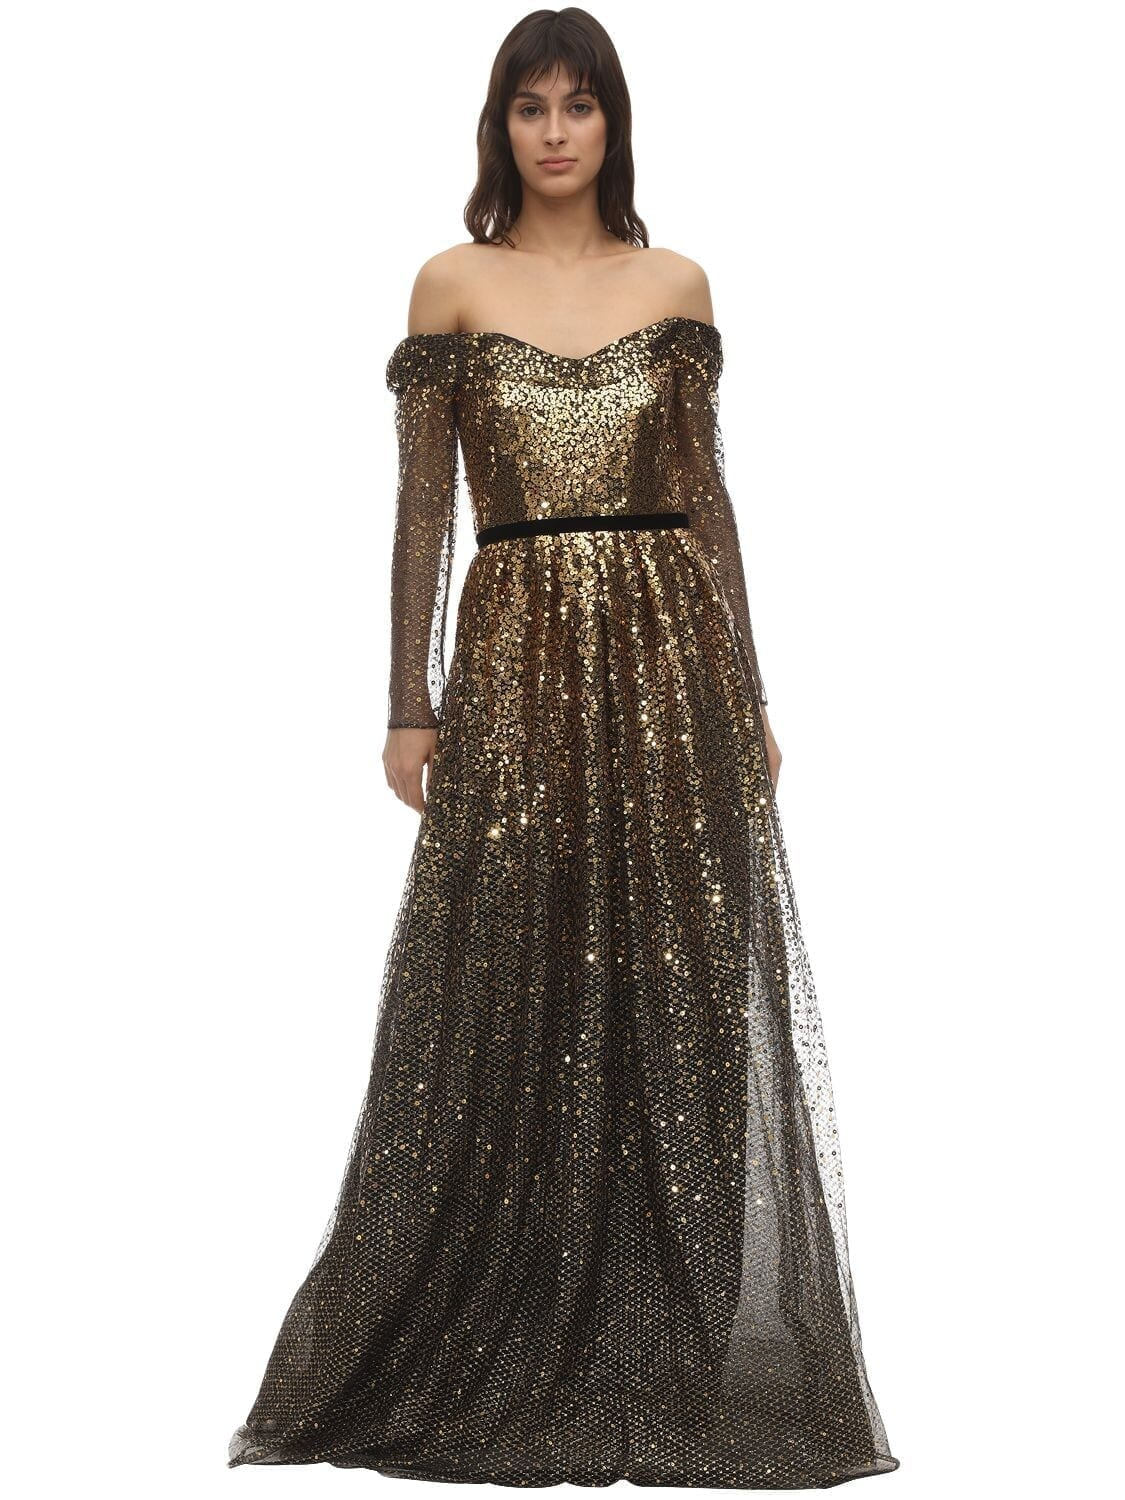 MARCHESA NOTTE Velvet Ribbon Degradé Sequined Gown